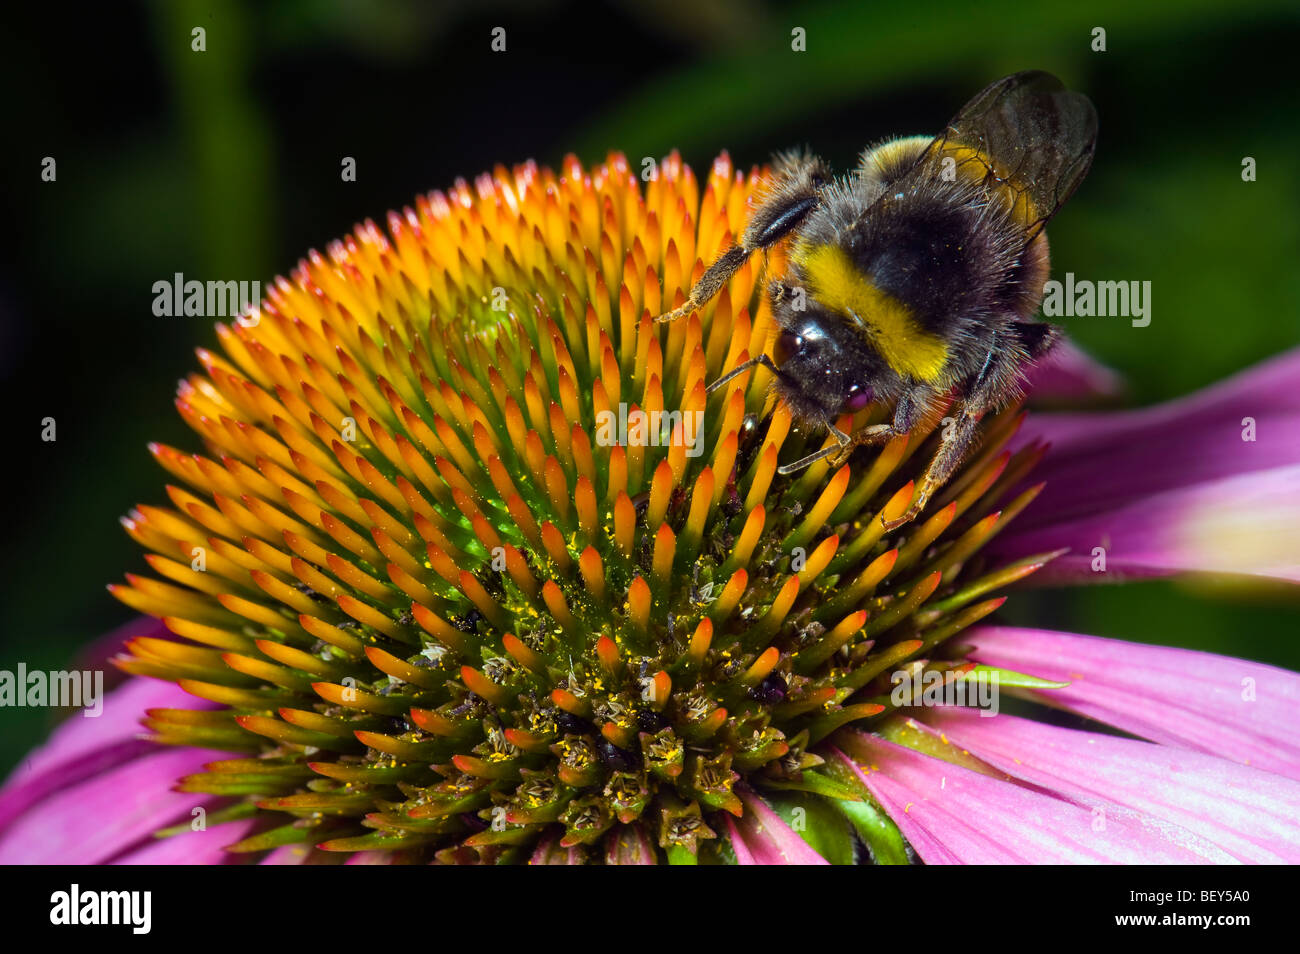 Echinacea purpurea flower flowering Bumble bee bumble-bee bumblebee fly insect animal Red Coneflower eastern purple Stock Photo